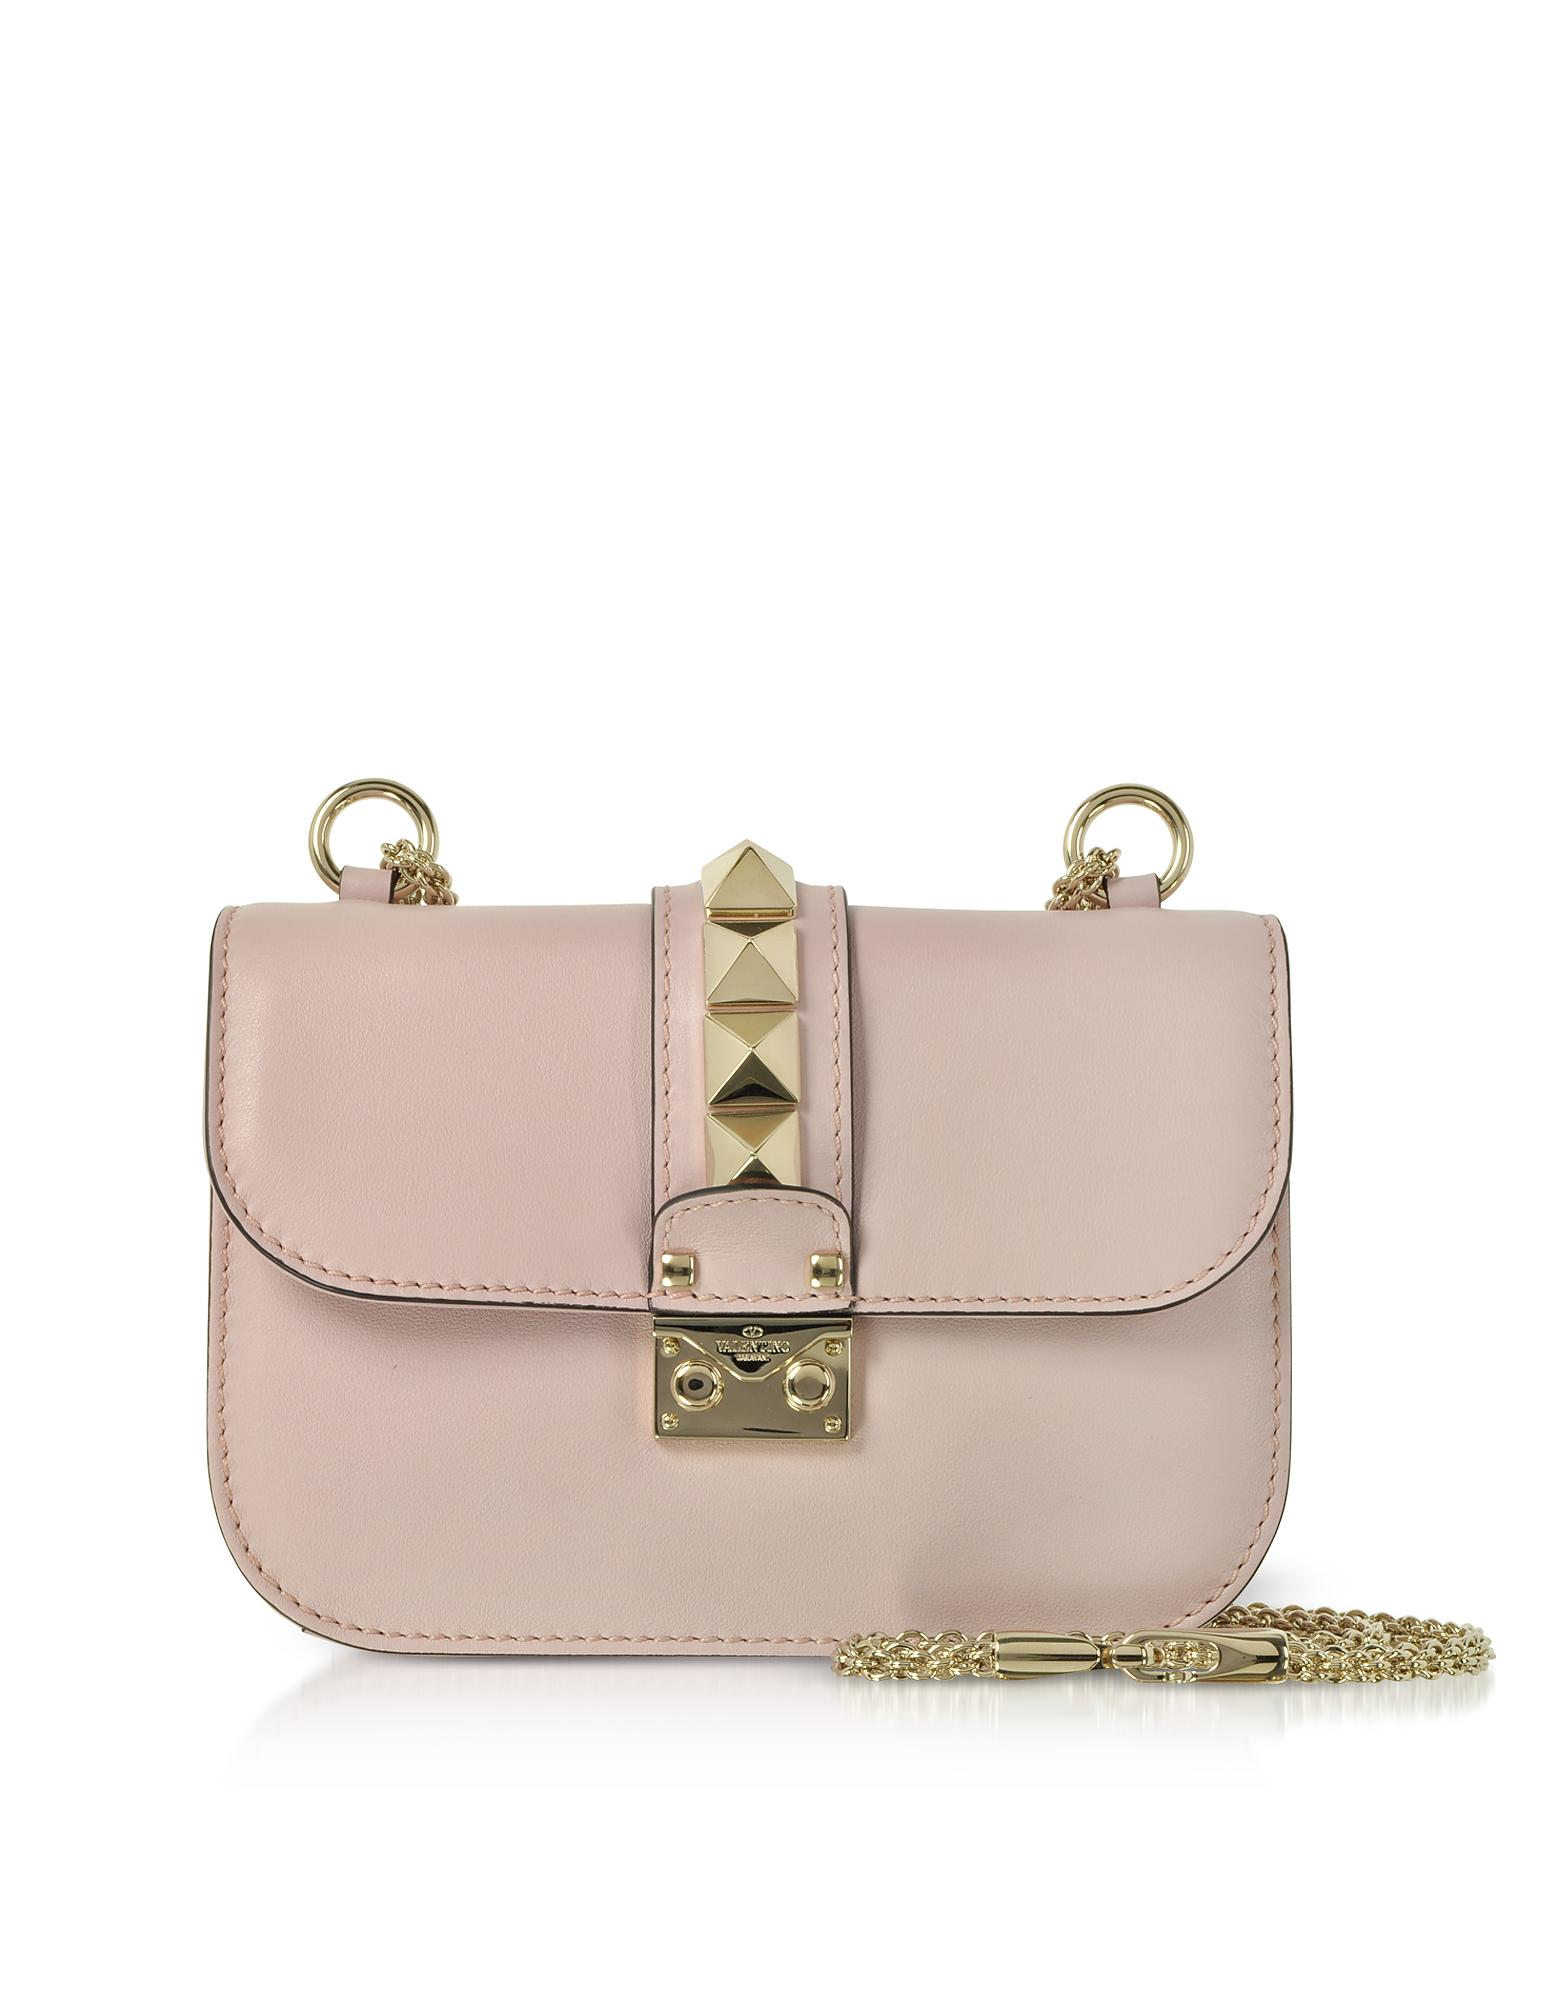 10bec8fe83c0 Lyst - Valentino Lock Small Leather Chain Shoulder Bag in Pink